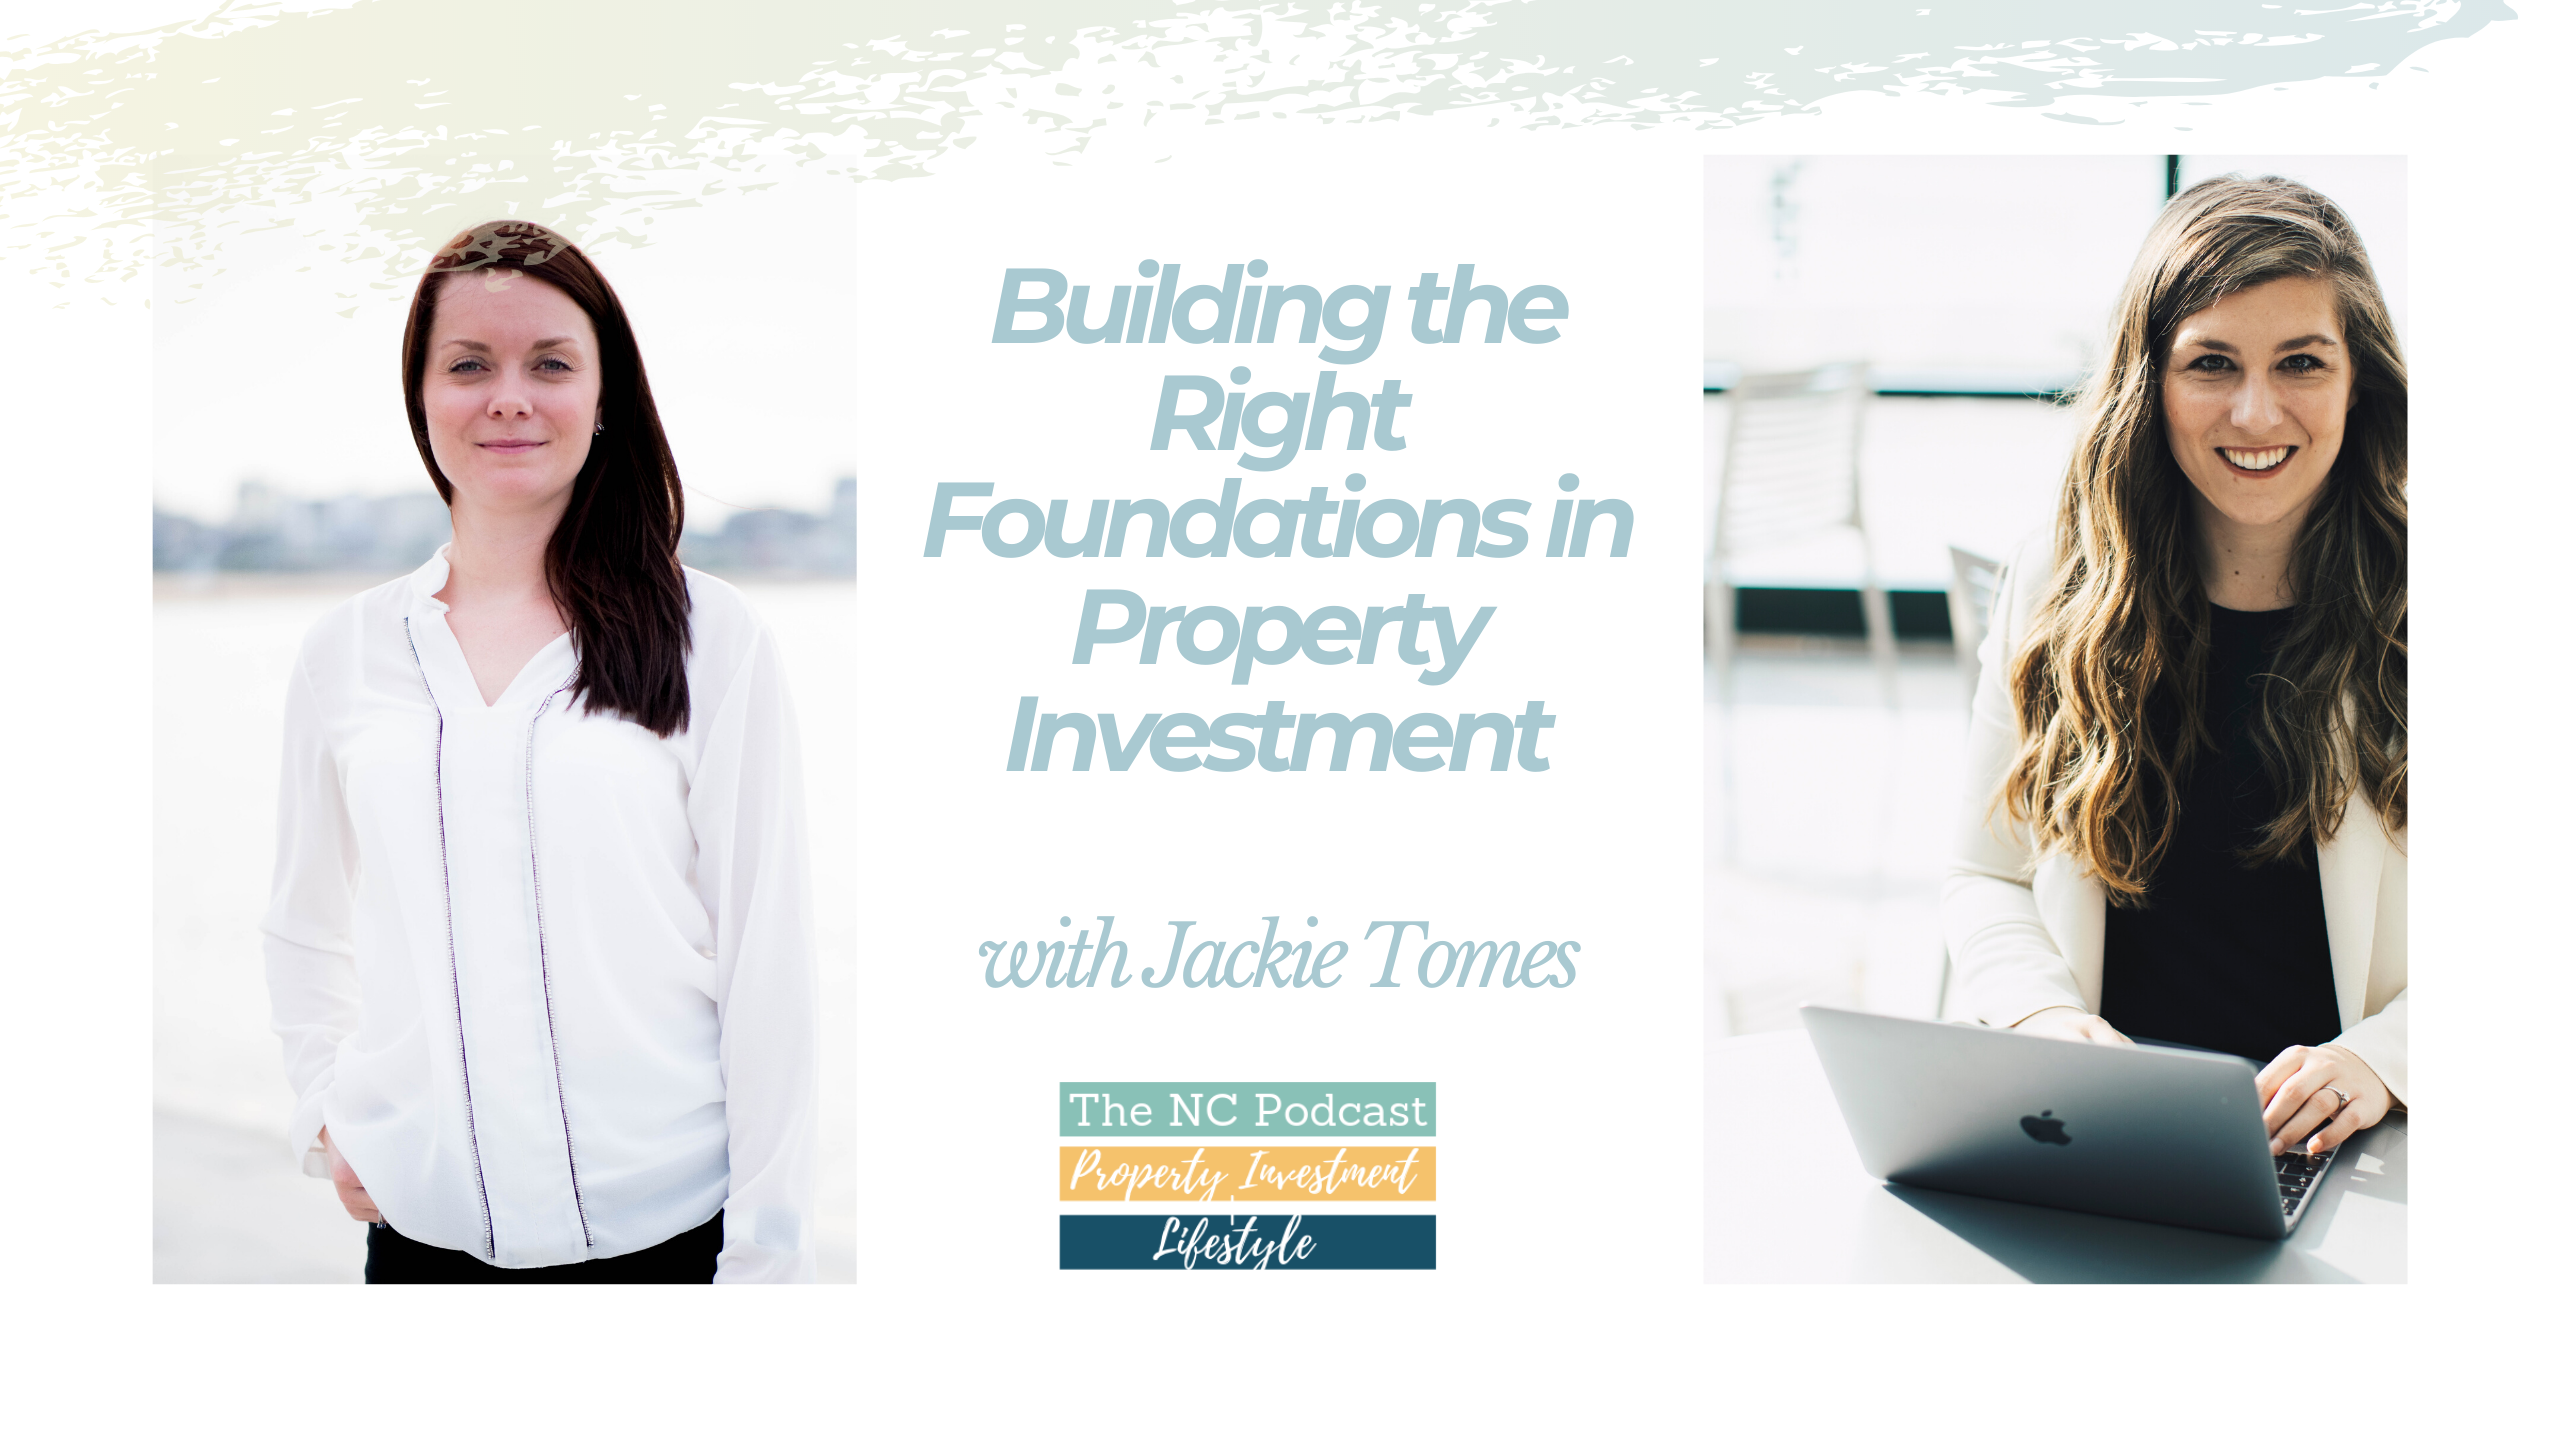 Building the Right Foundations in Property Investment with Jackie Tomes